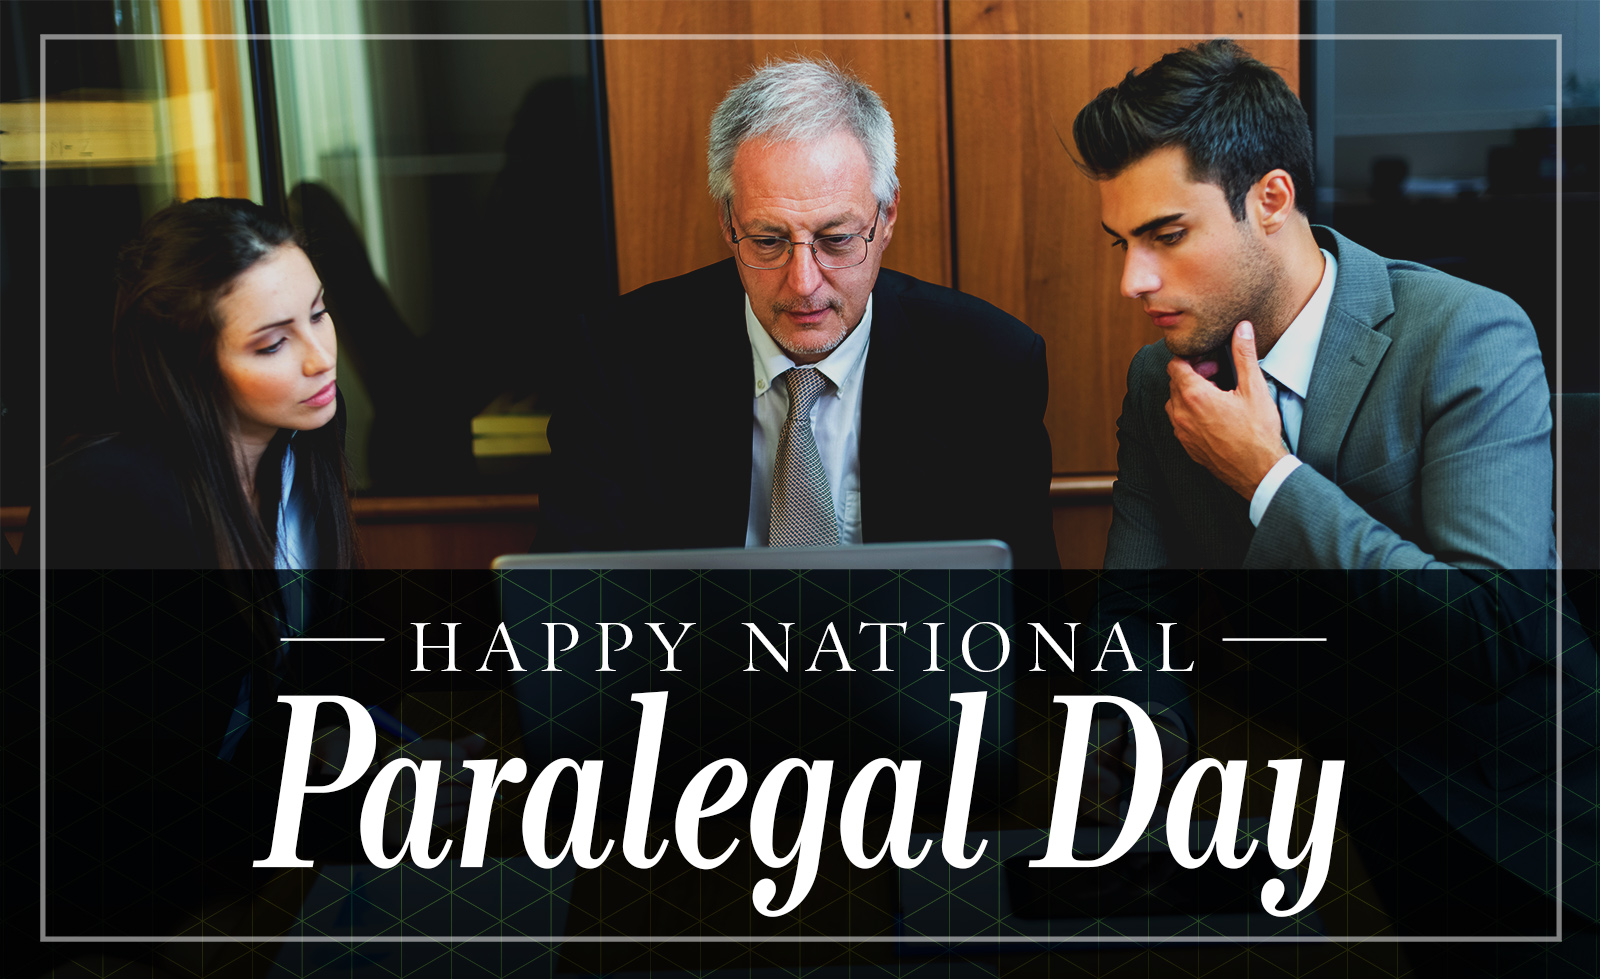 National Paralegal Day Wishes Pics